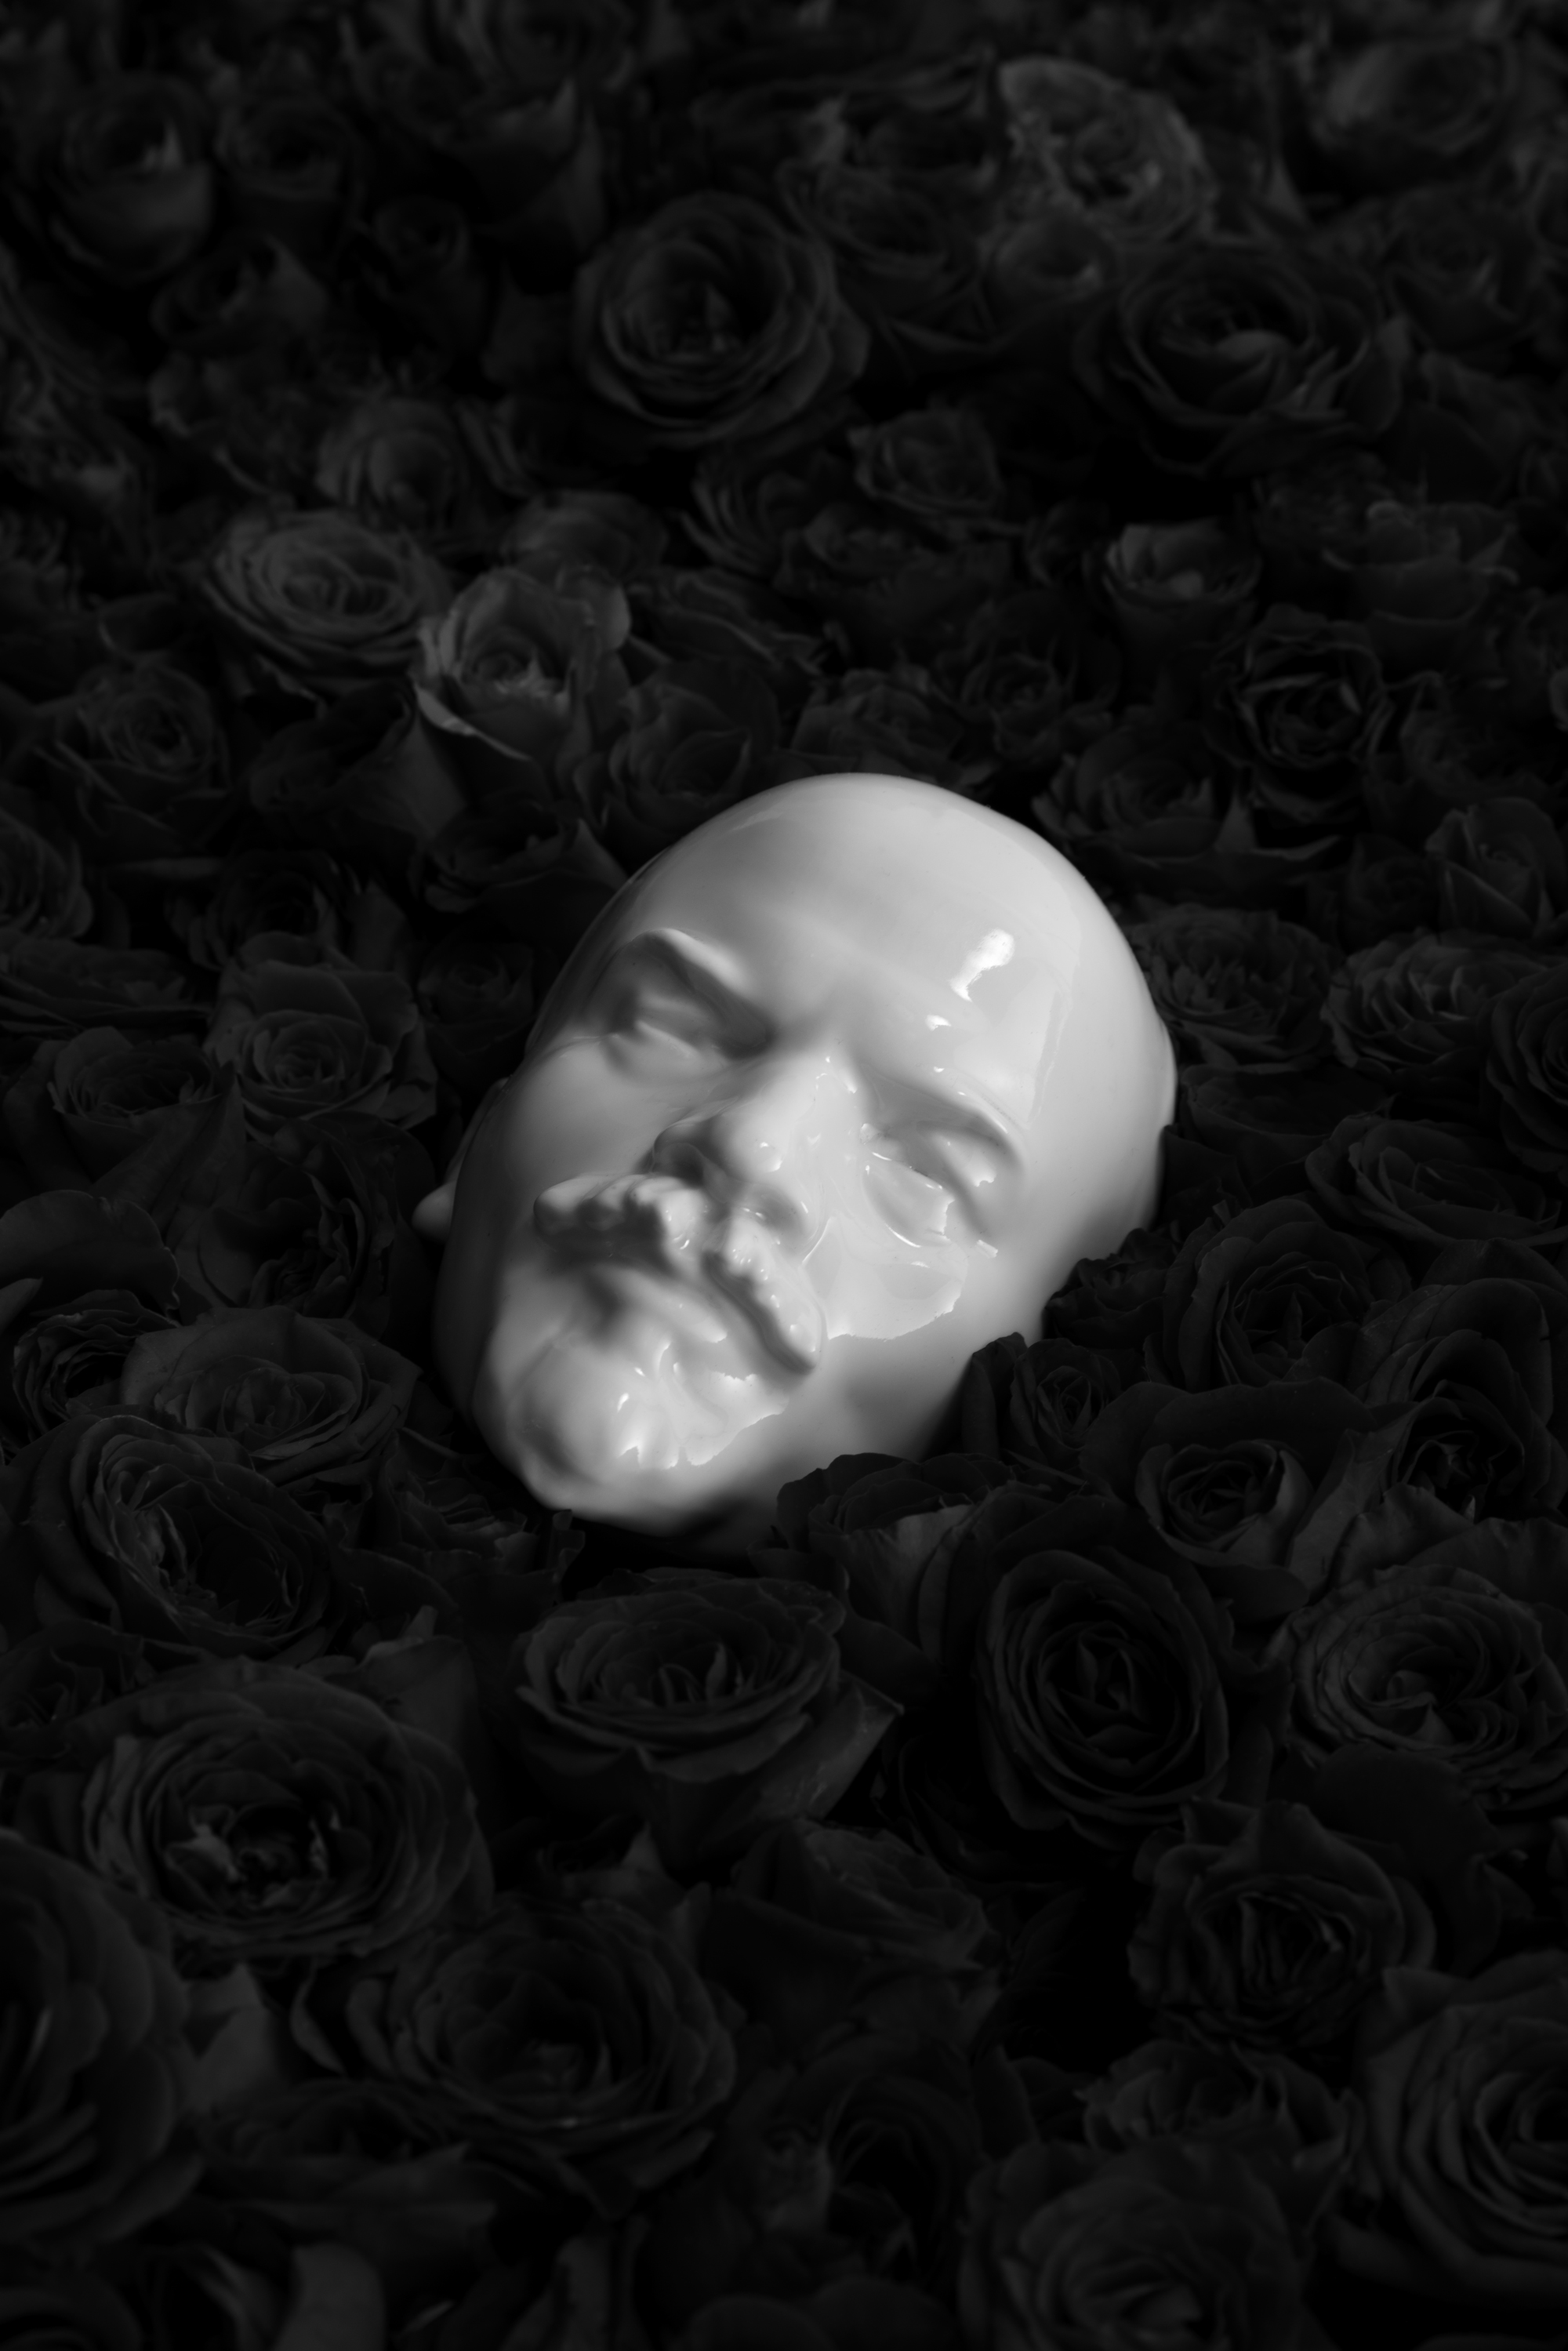 Still Life with Lenin and Dead Roses